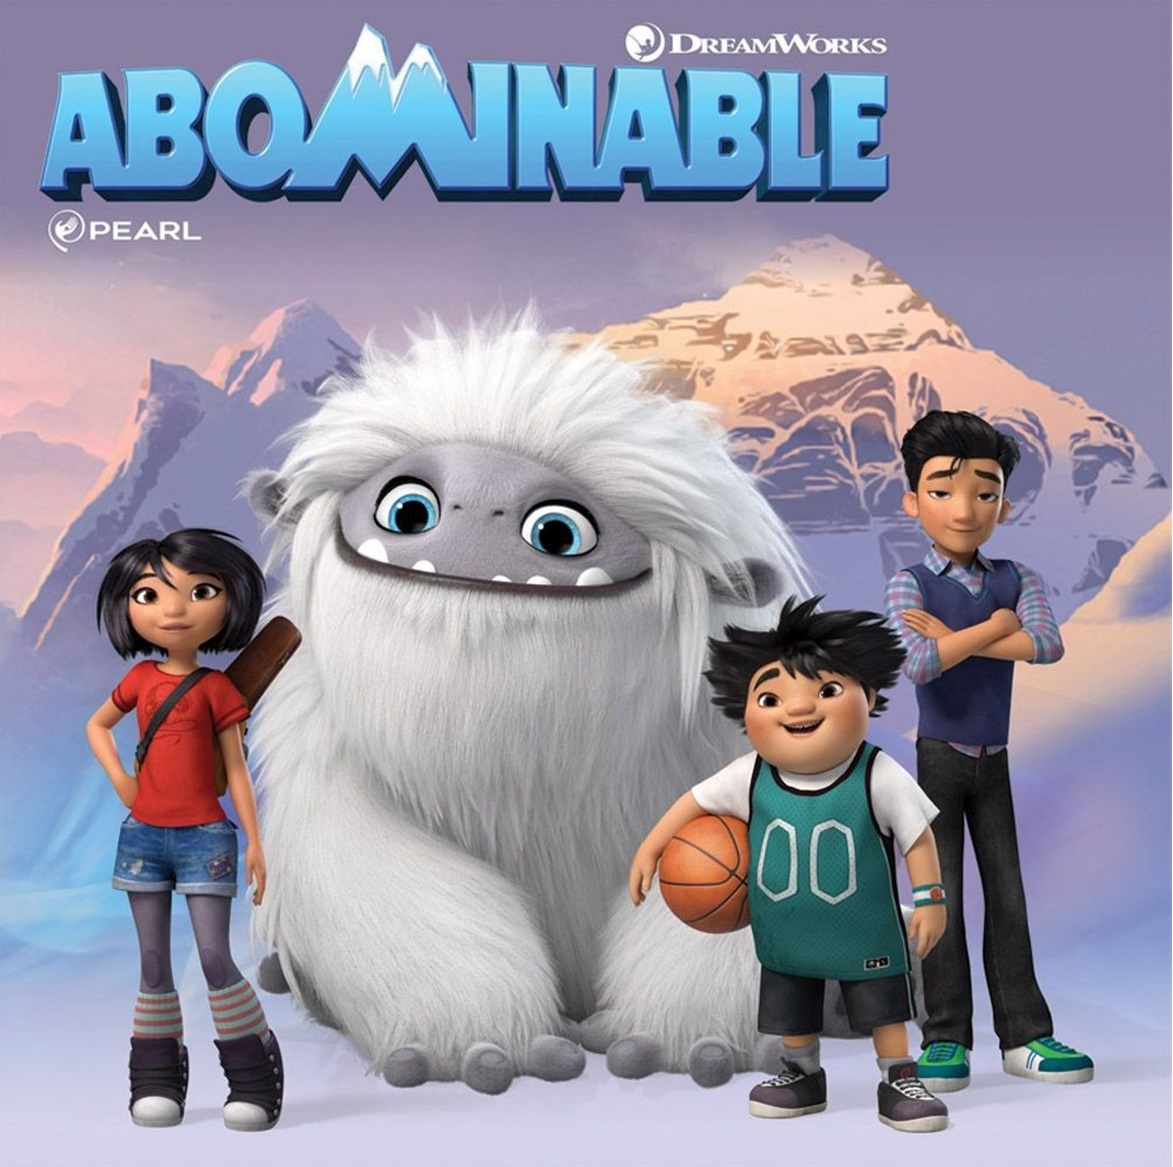 Abominable (U) – Fully booked